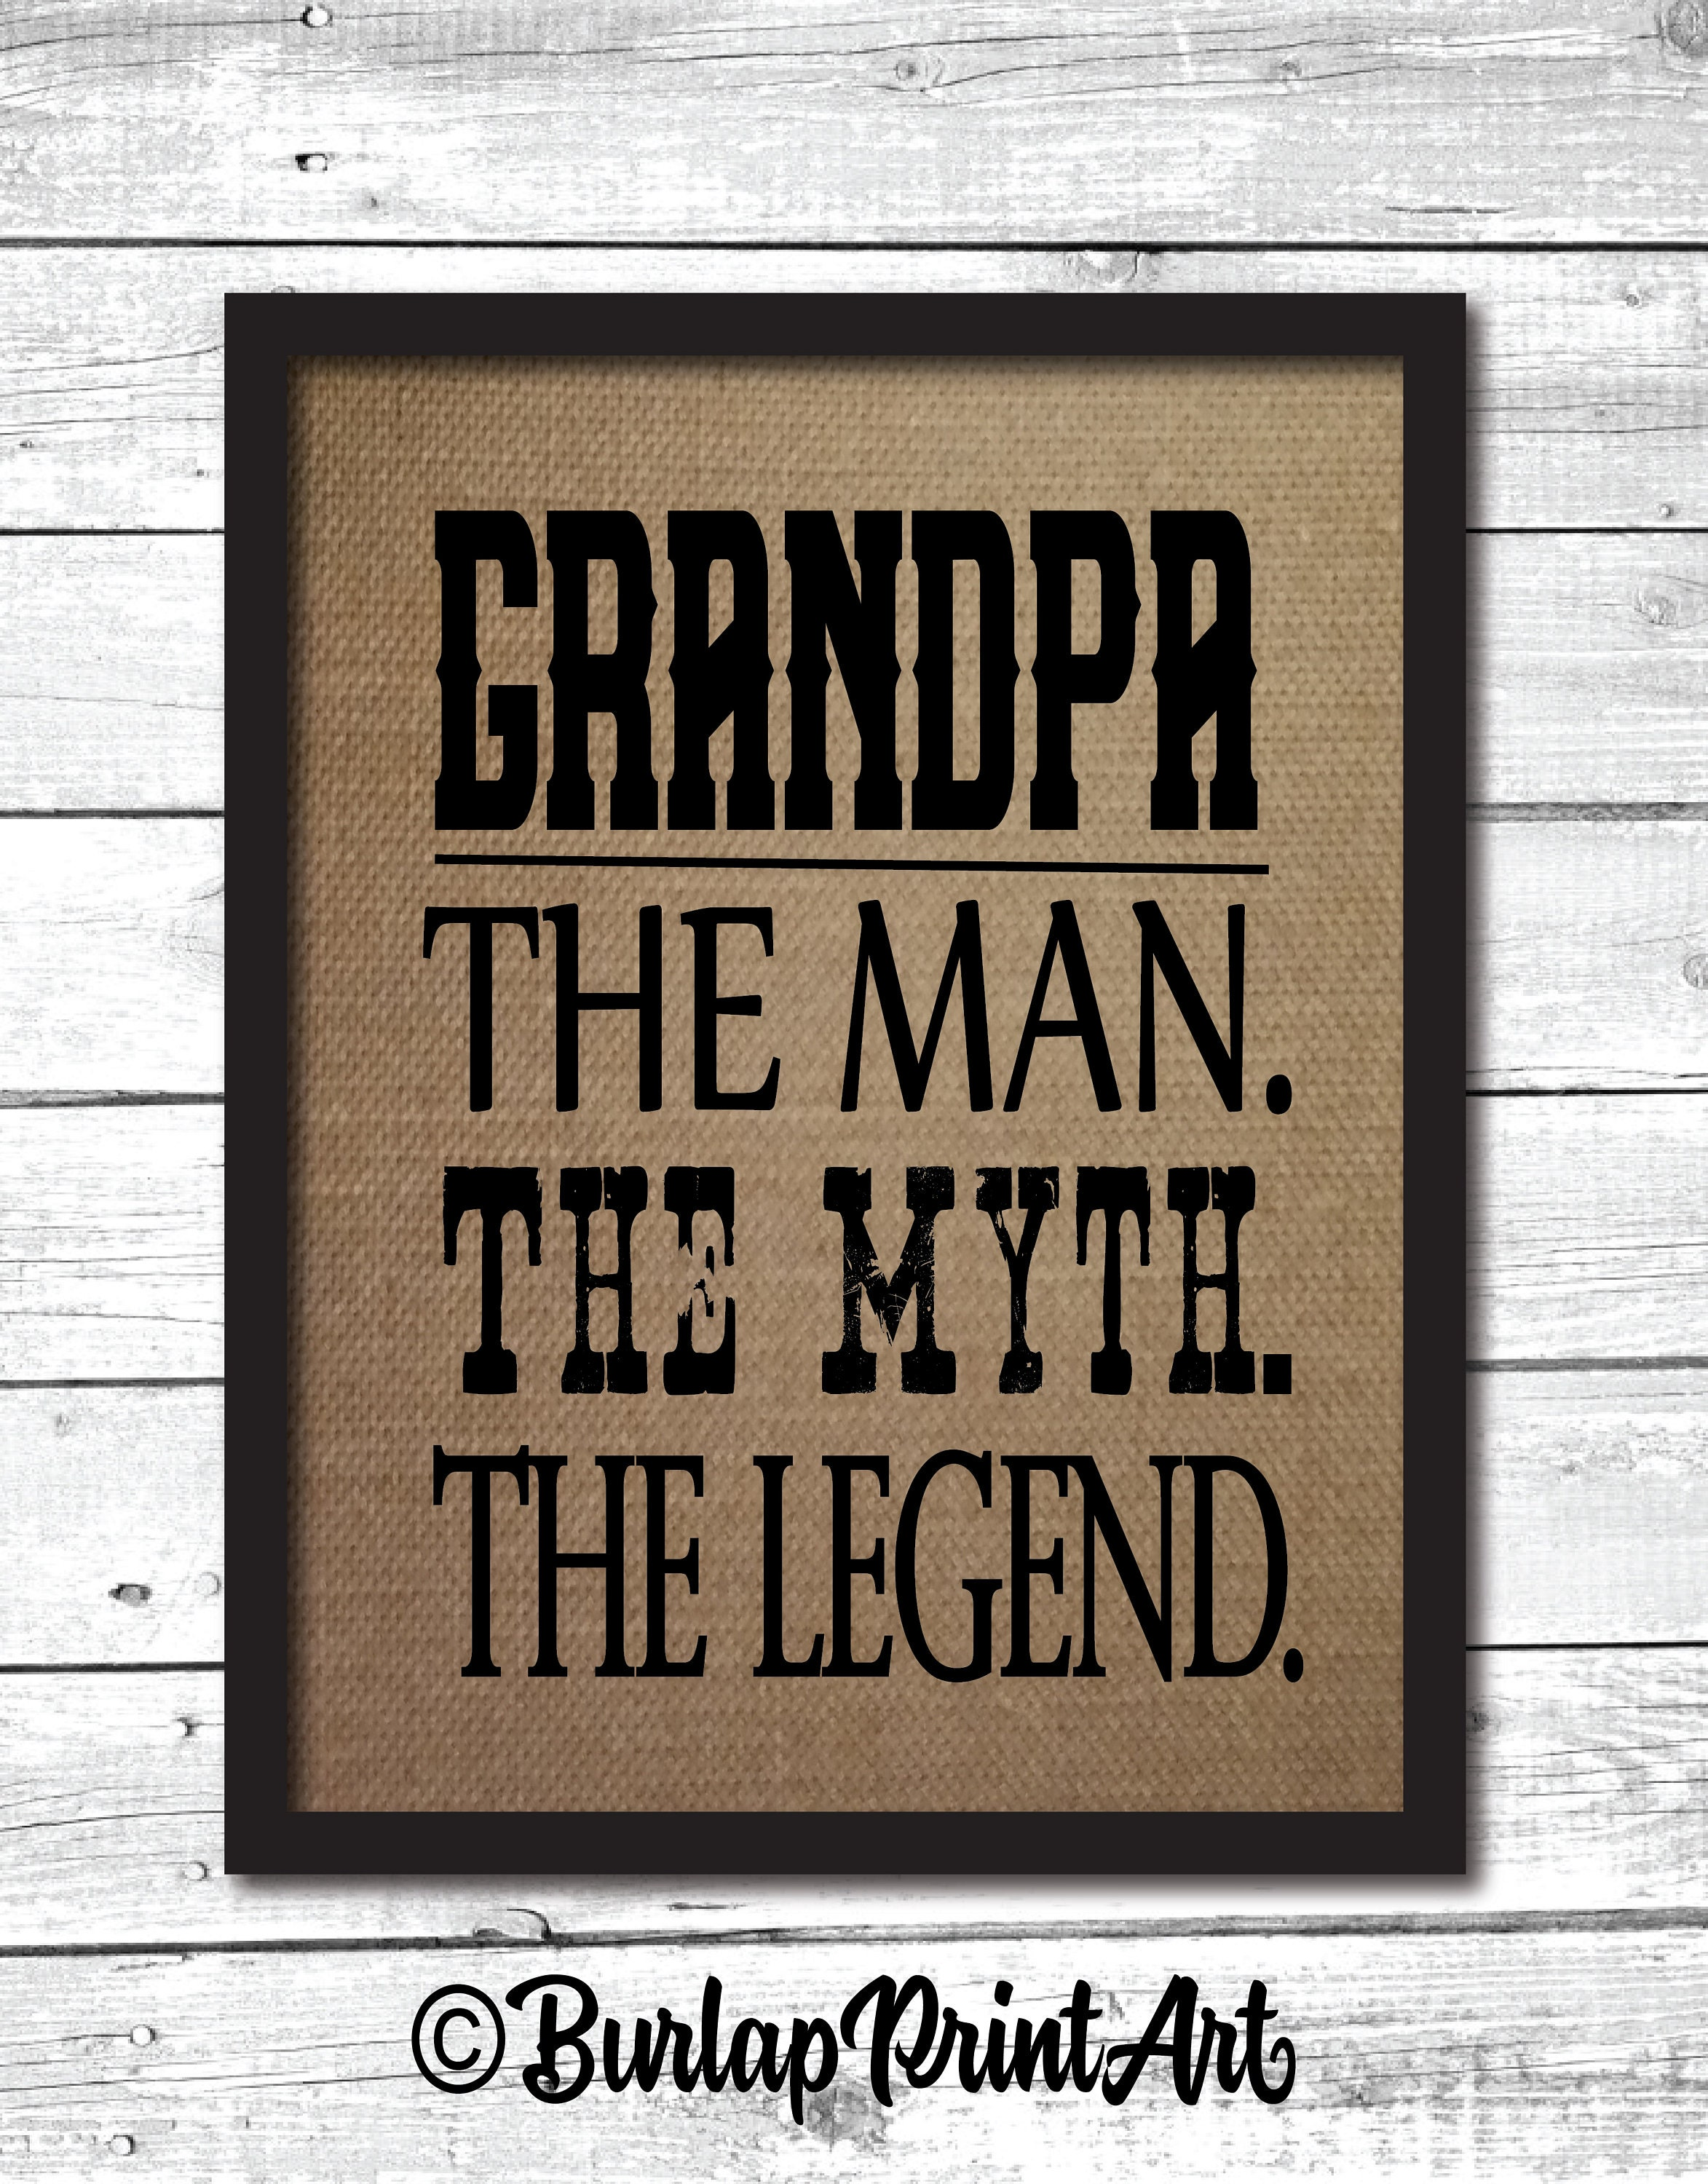 grandpa gifts for fathers day new grandparetns gifts for | Etsy